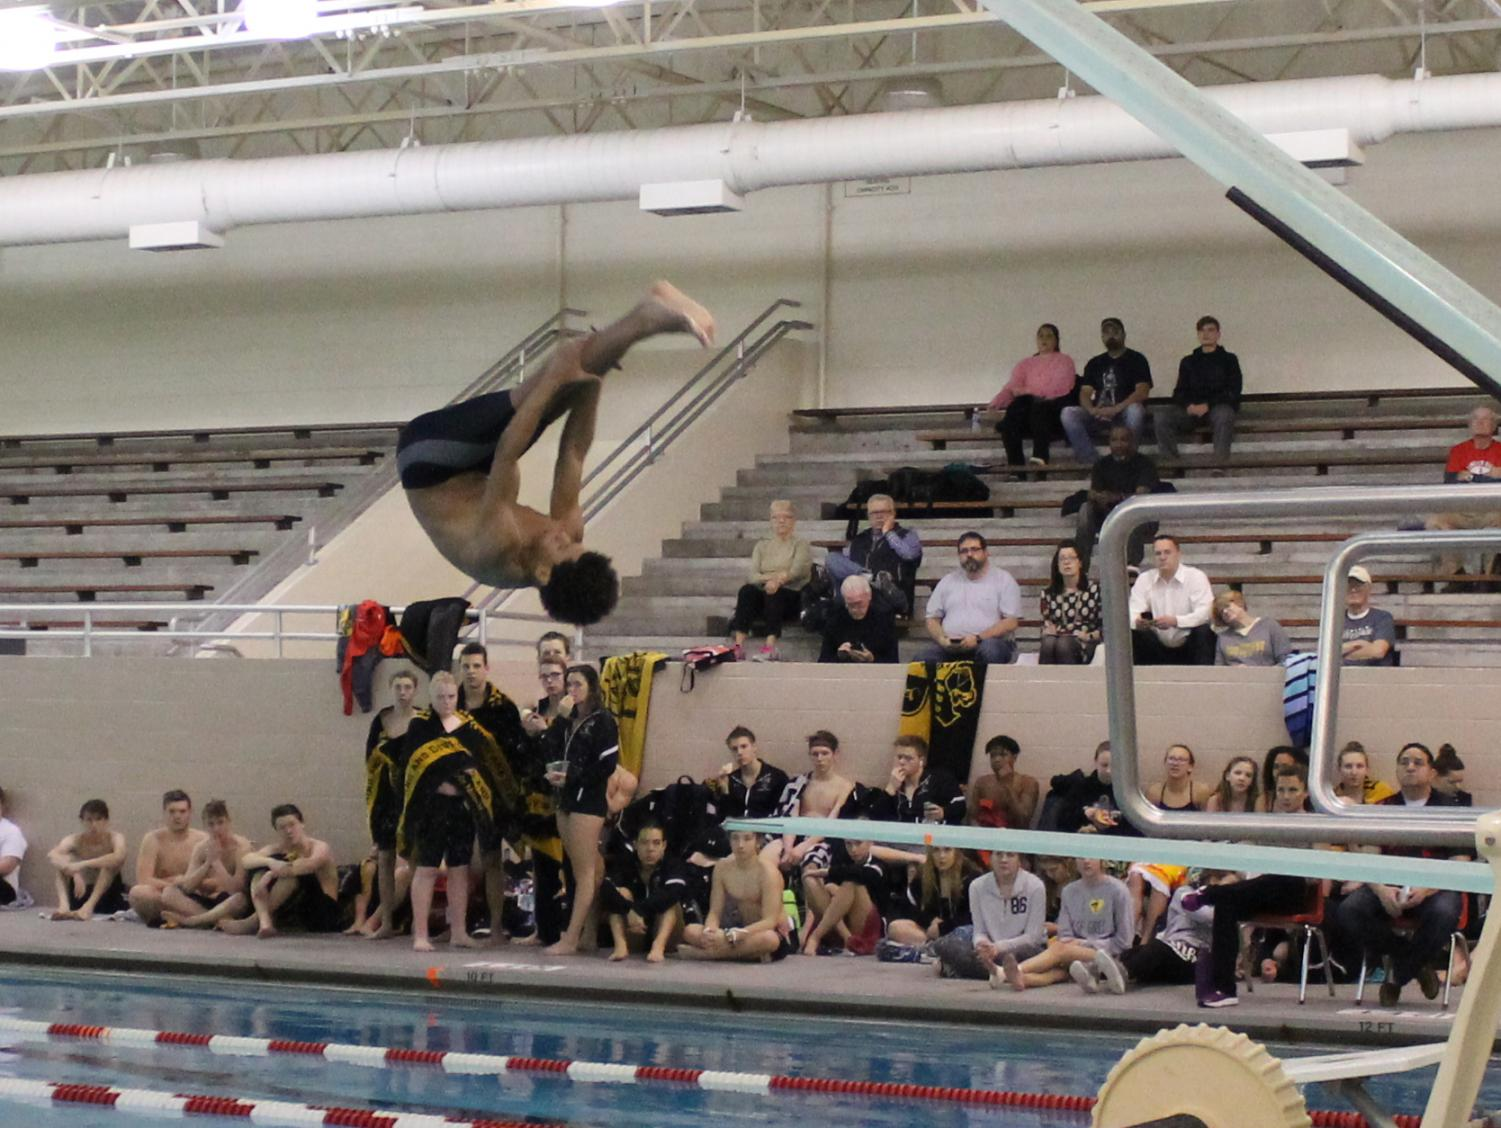 Isaiah Winston (10) does a forward double pike for his second dive at a triangular meet held at Lincoln High on January 25th, 2018 against Fremont and Southeast. Winston scored 320 points at this meet and qualified (again) for state. Photo by Madeline Walker.